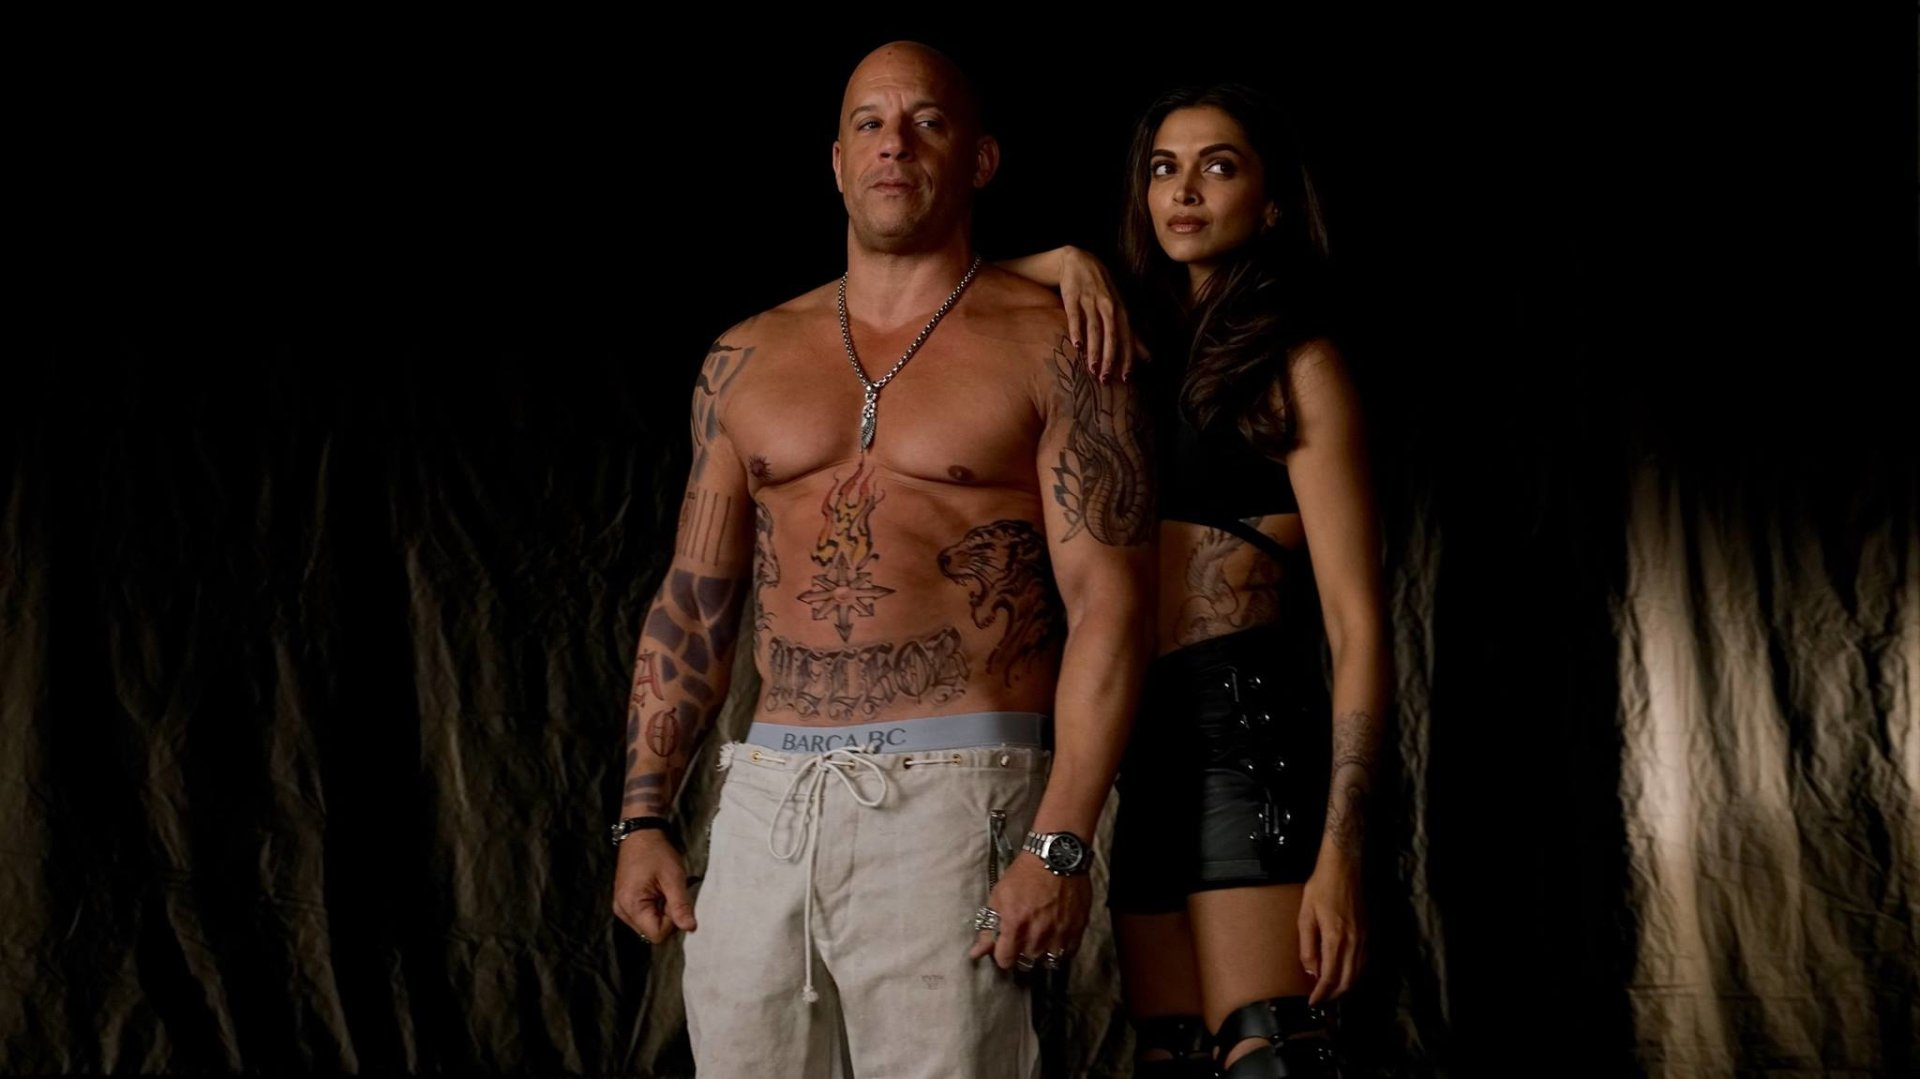 Movie - xXx: Return of Xander Cage  Xander Cage Vin Diesel Deepika Padukone Wallpaper